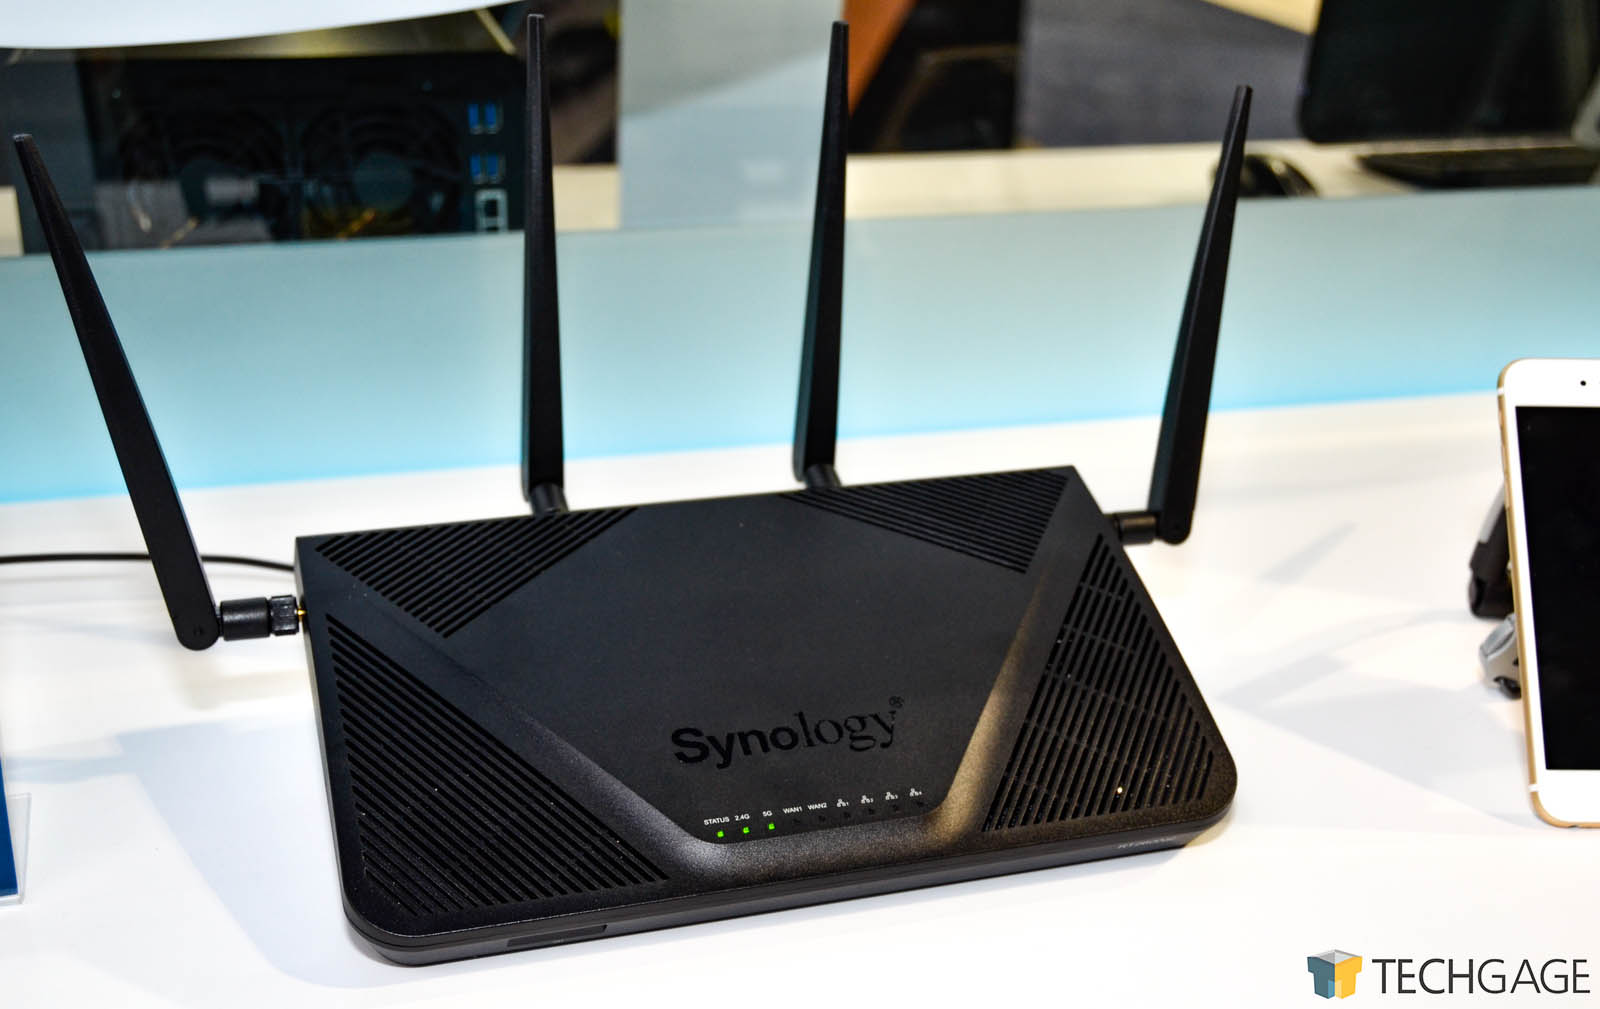 A Look At Synology's RT2600ac Wireless Router – Techgage